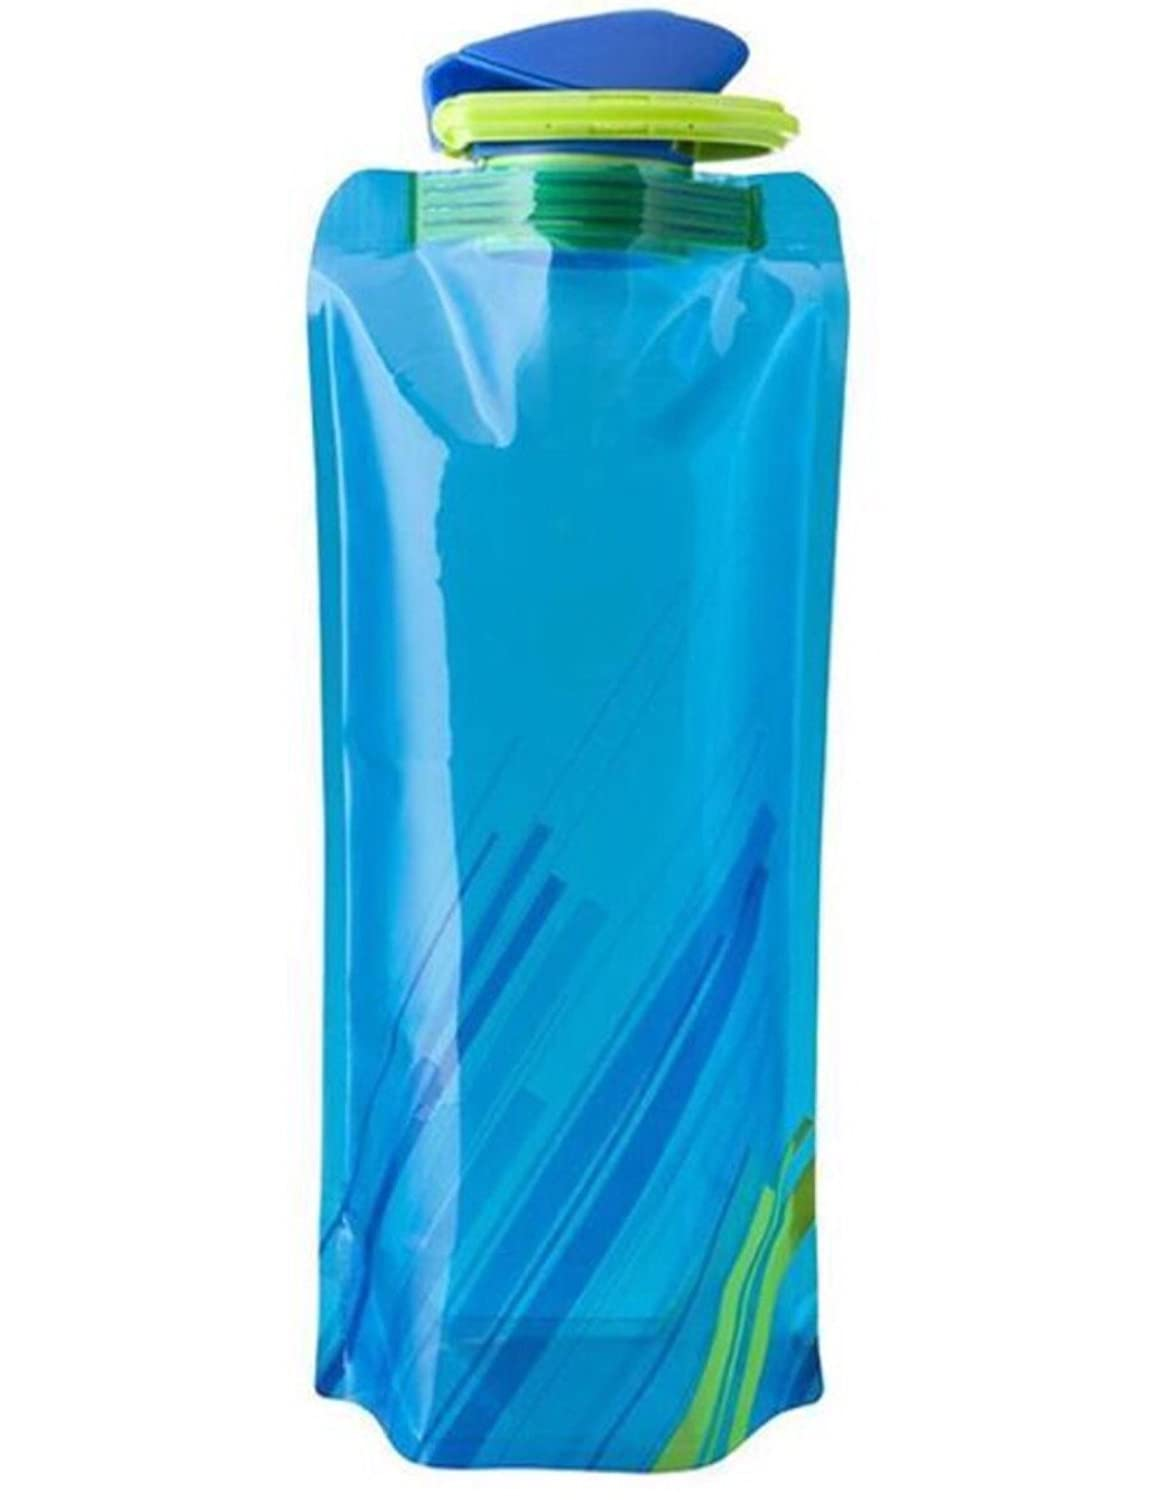 Zombie Apocalypse Survival Lightweight Silicone Foldable Collapsible Portable Water Bottle Leak Proof for Travel Outdoor Sports Survival BPA Free